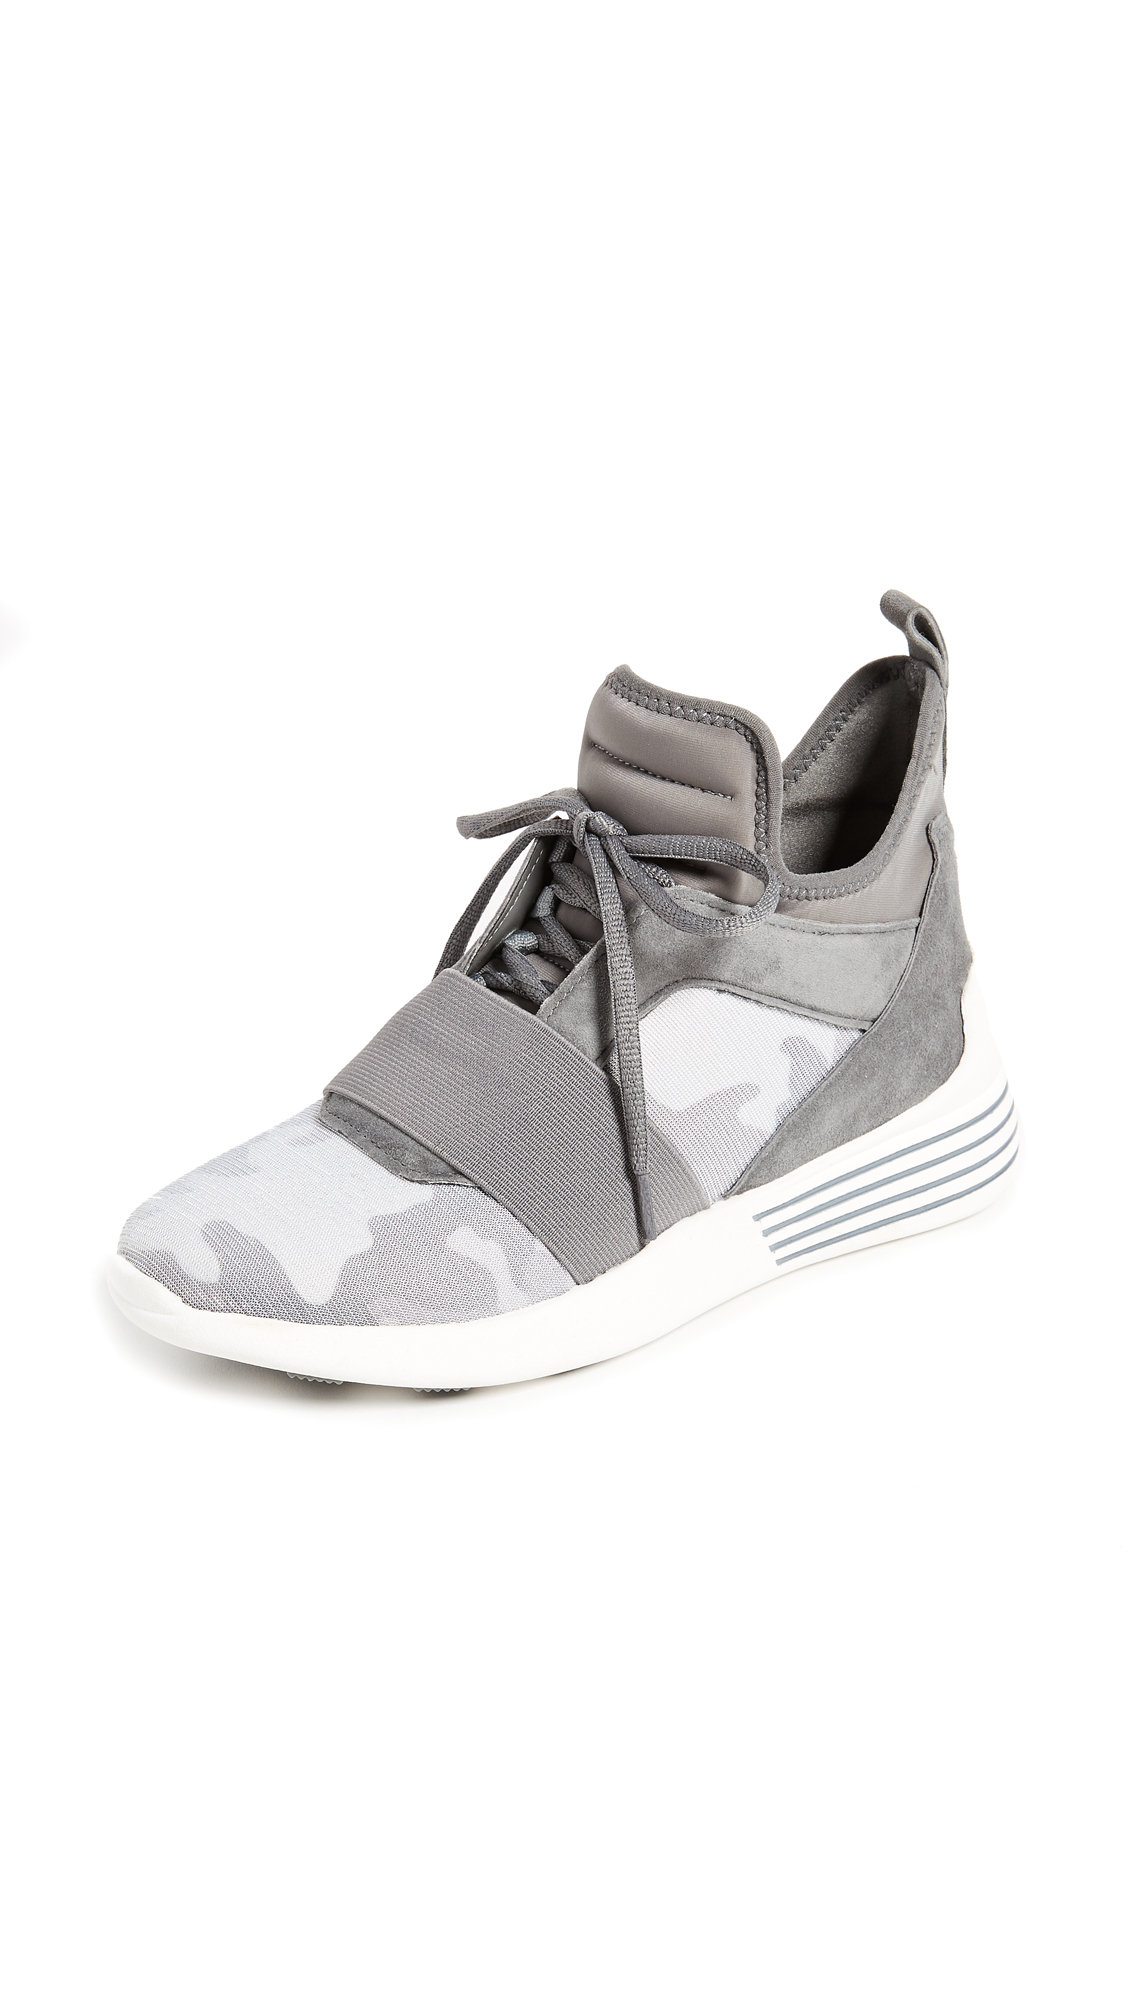 KENDALL + KYLIE Braydin Sneakers - Silver/Grey/Camo